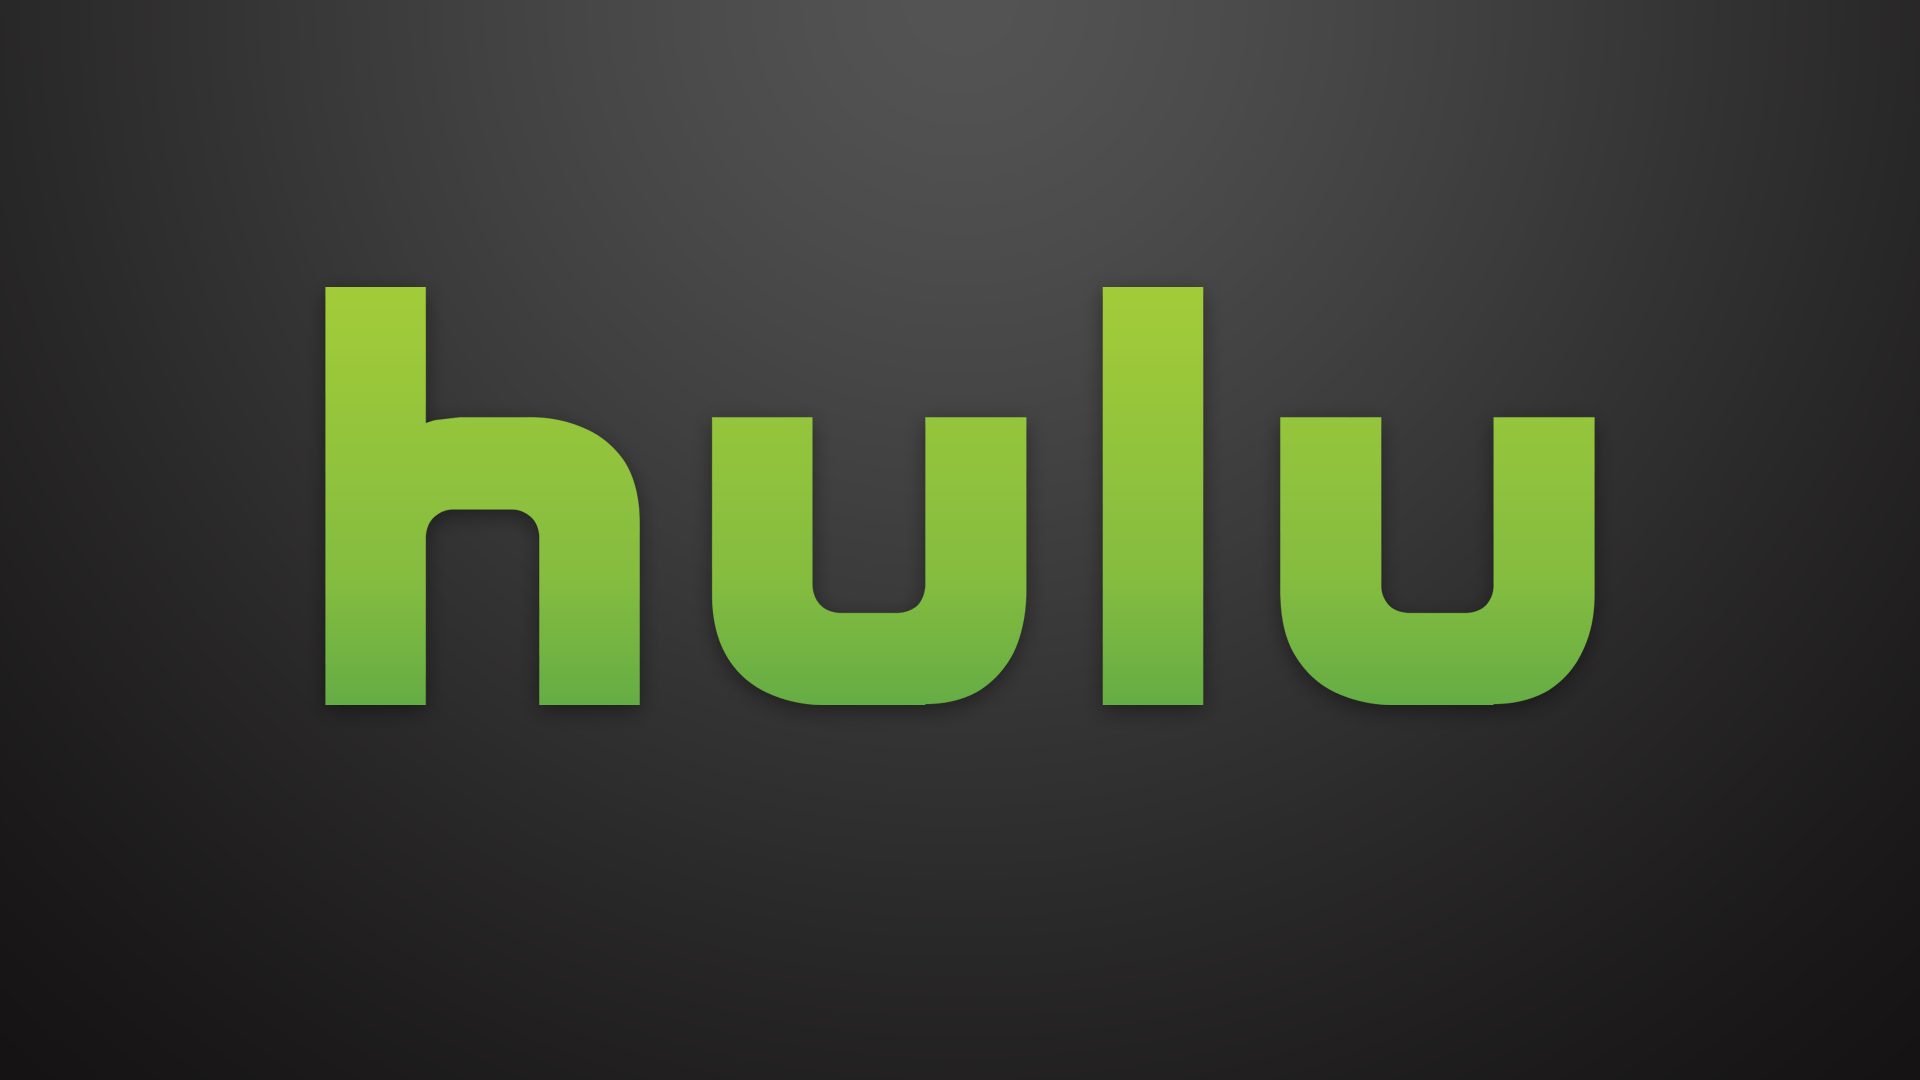 Disney Integrates Hulu Into D2C Unit, Hulu CEO Randy Freer Exits 02/03/2020